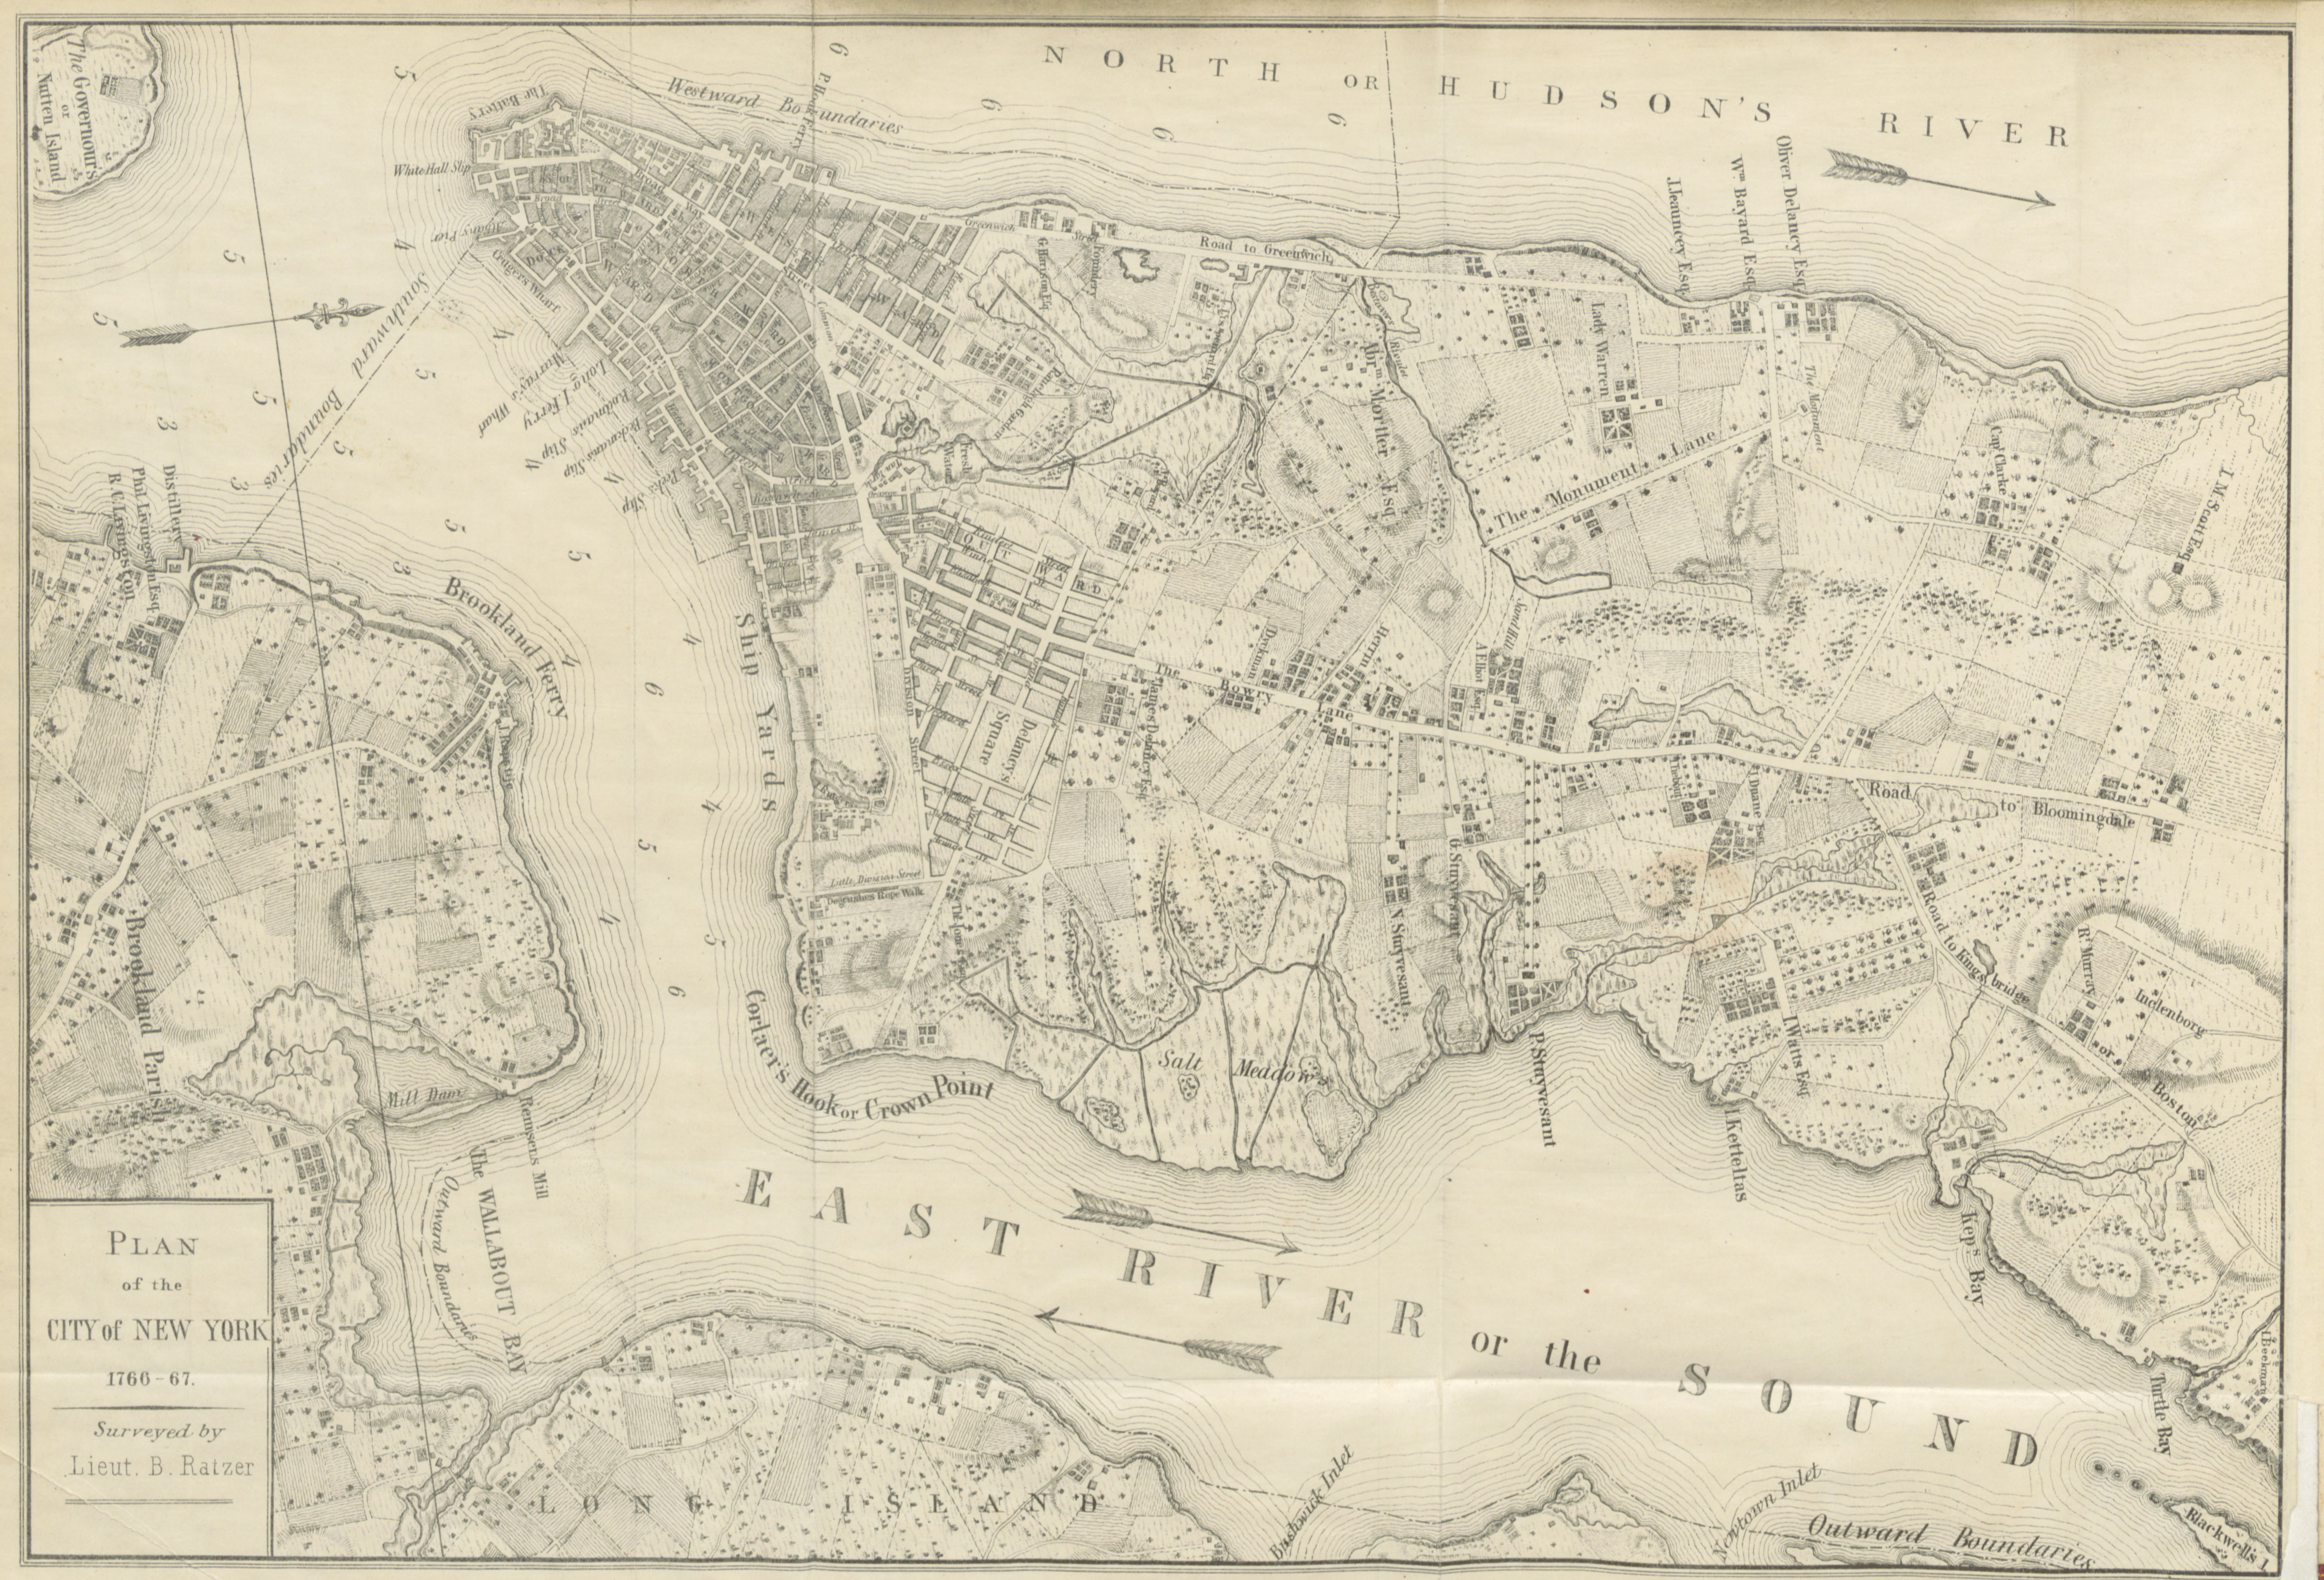 'Plan of the City of New York, 1766-77' from 'New York City during the American Revolution', 1861 (c) British Library Board